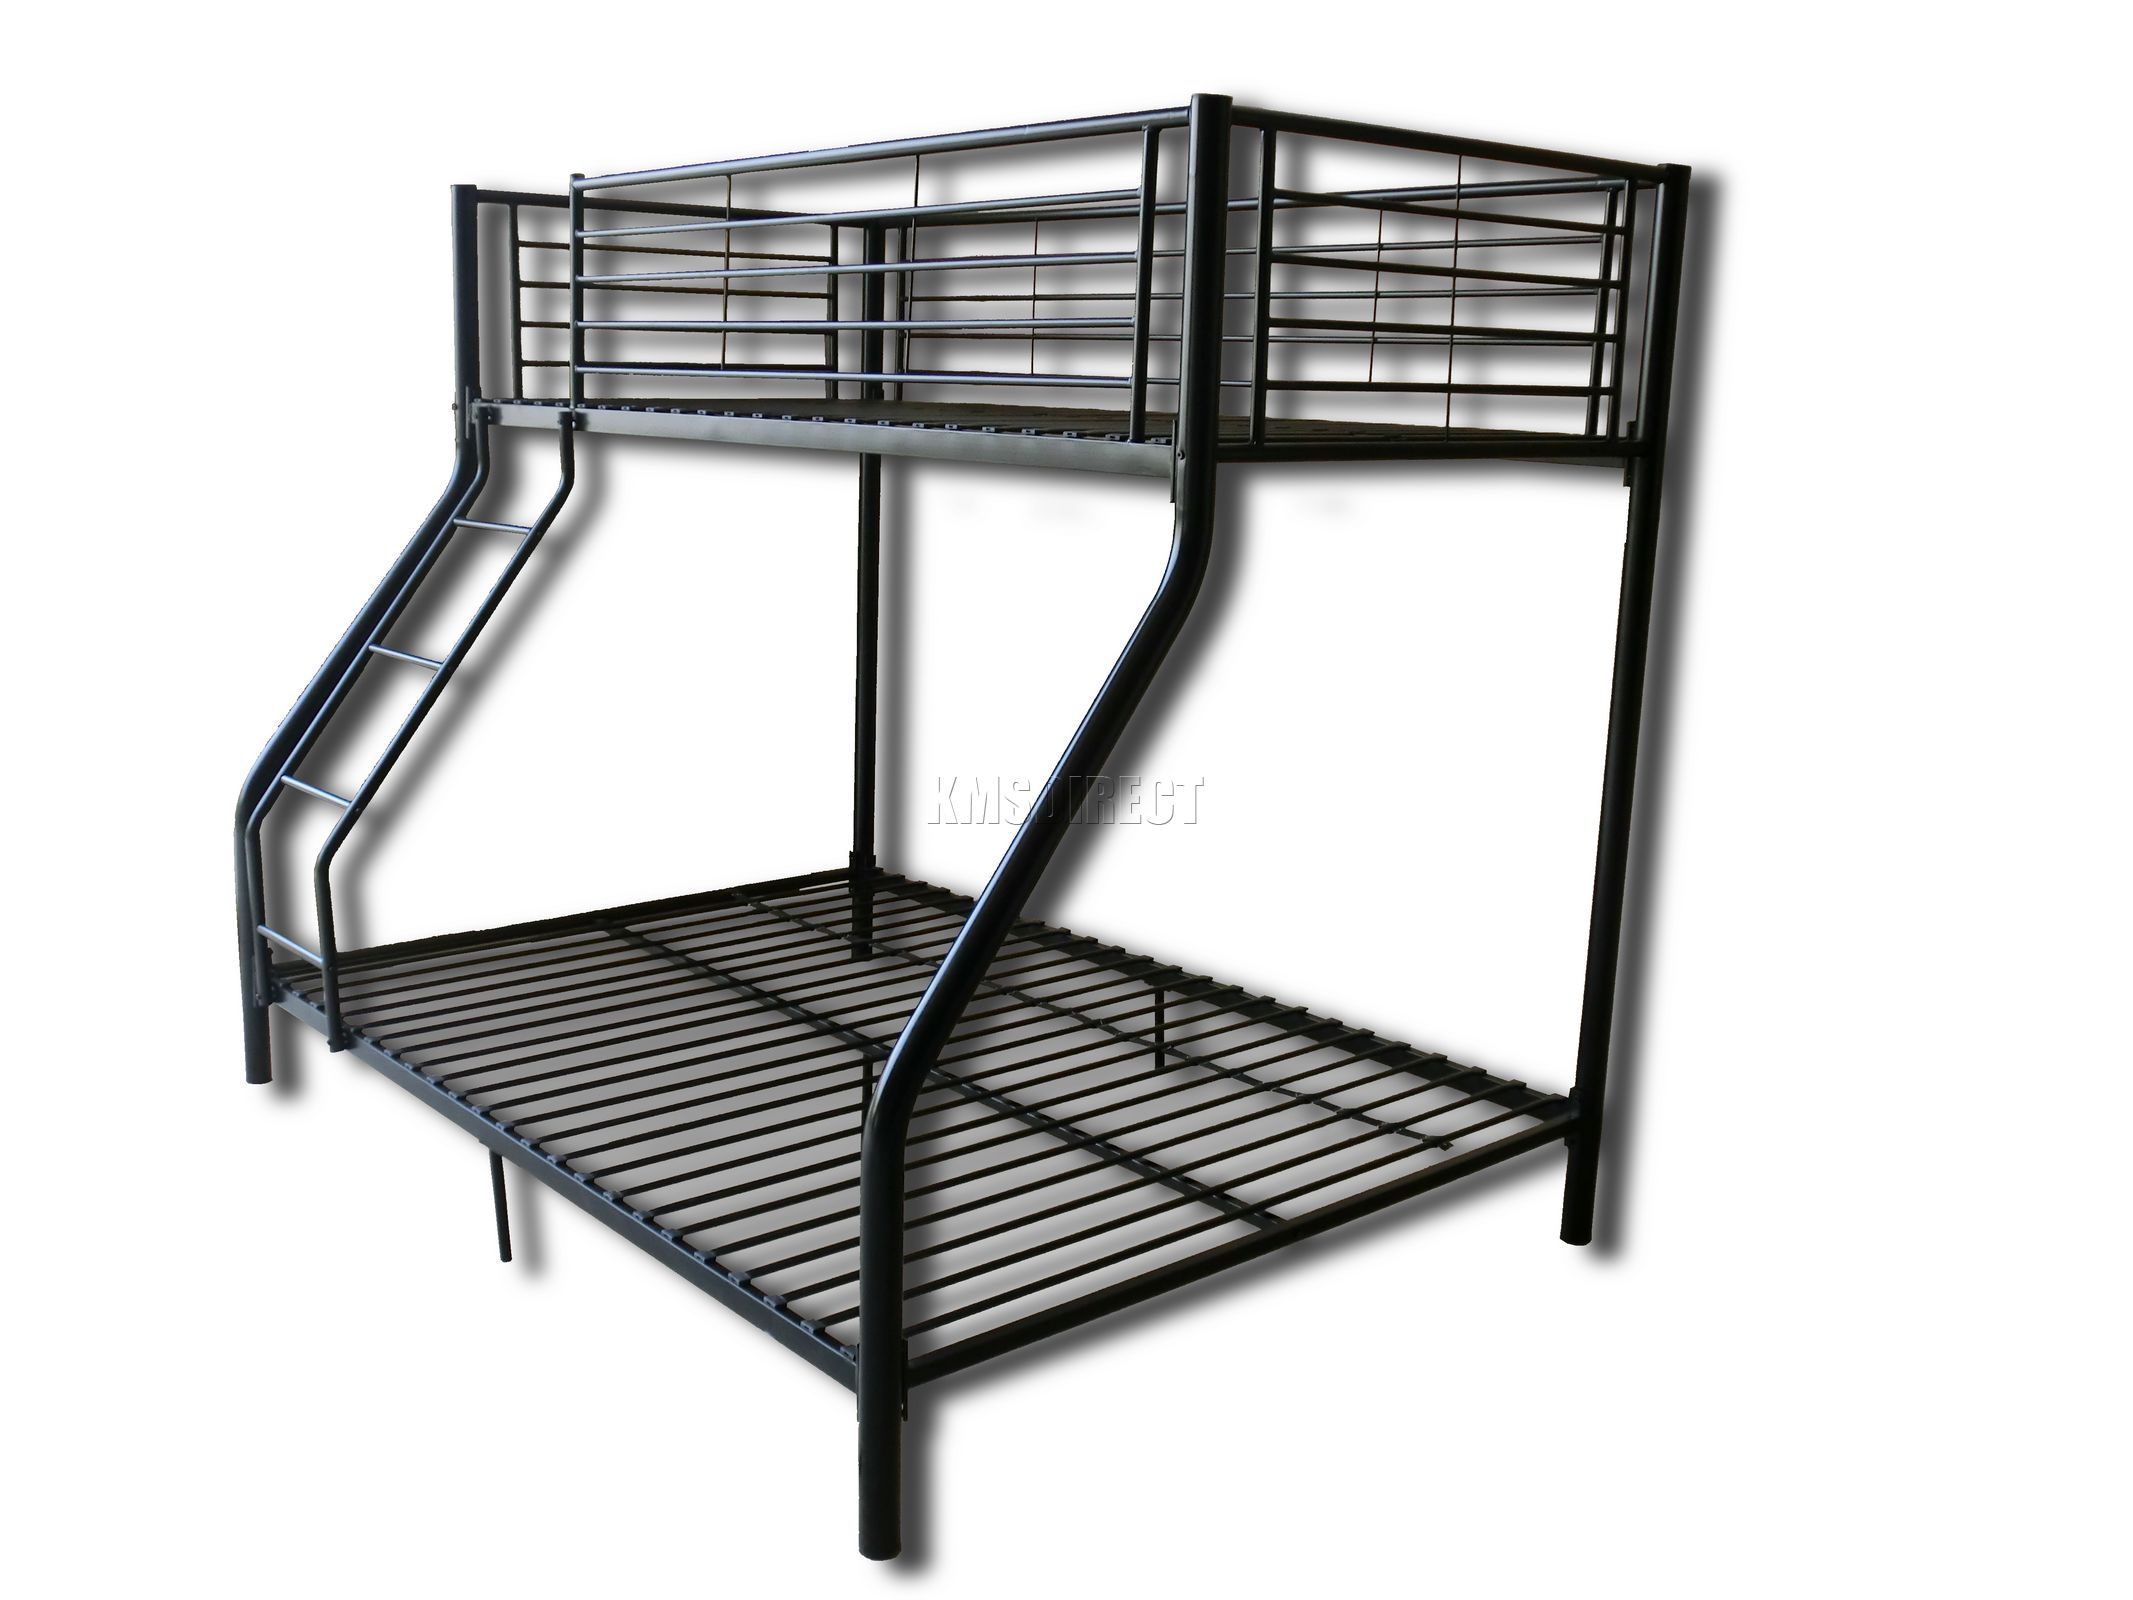 new black metal triple children sleeper bunk bed frame no mattress ebay. Black Bedroom Furniture Sets. Home Design Ideas